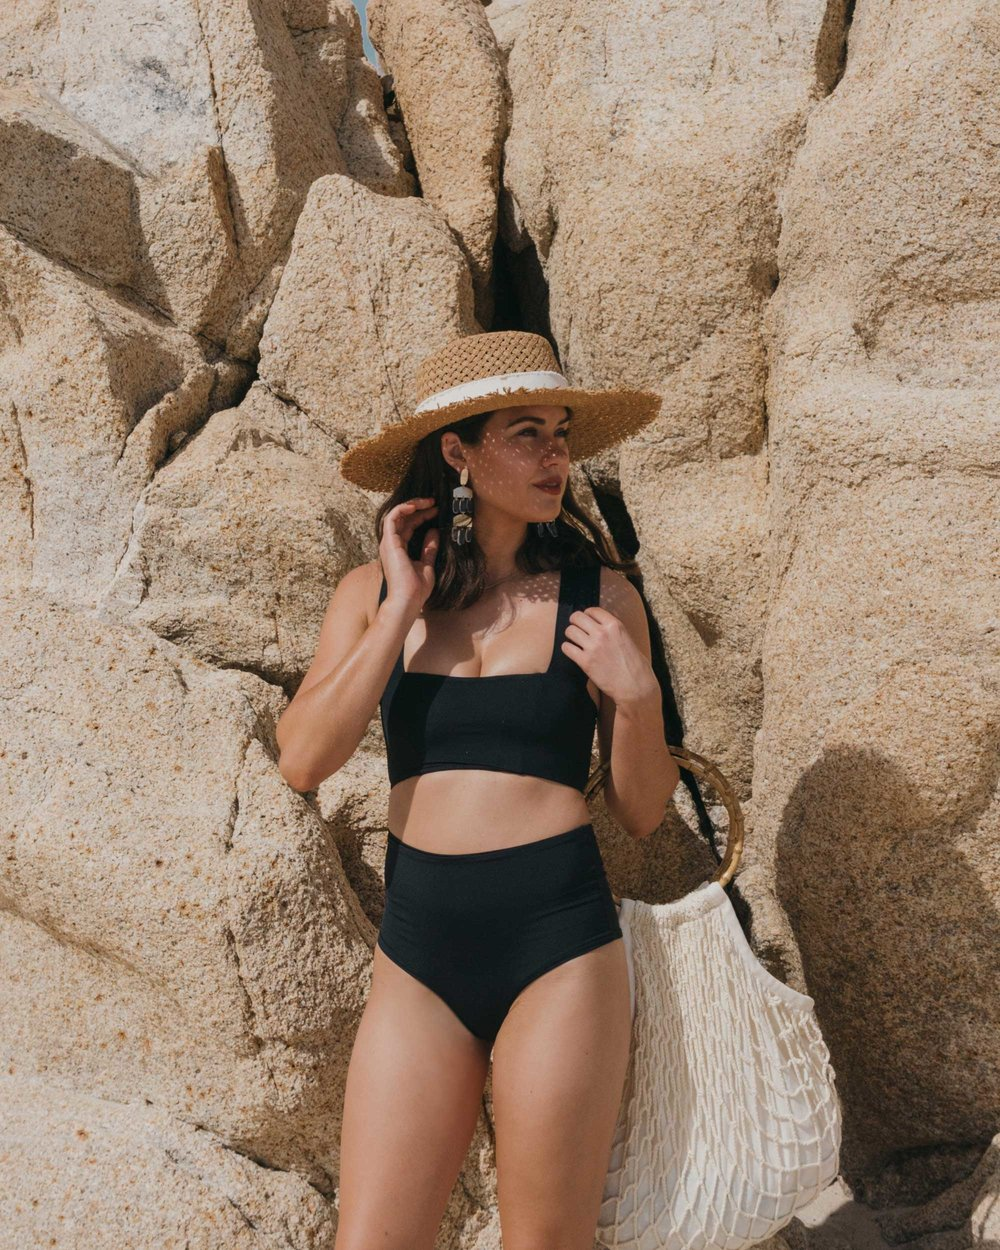 LSpace Women's Parker Bikini in Black One&Only Palmilla in Los Cabos Mexico2.jpg